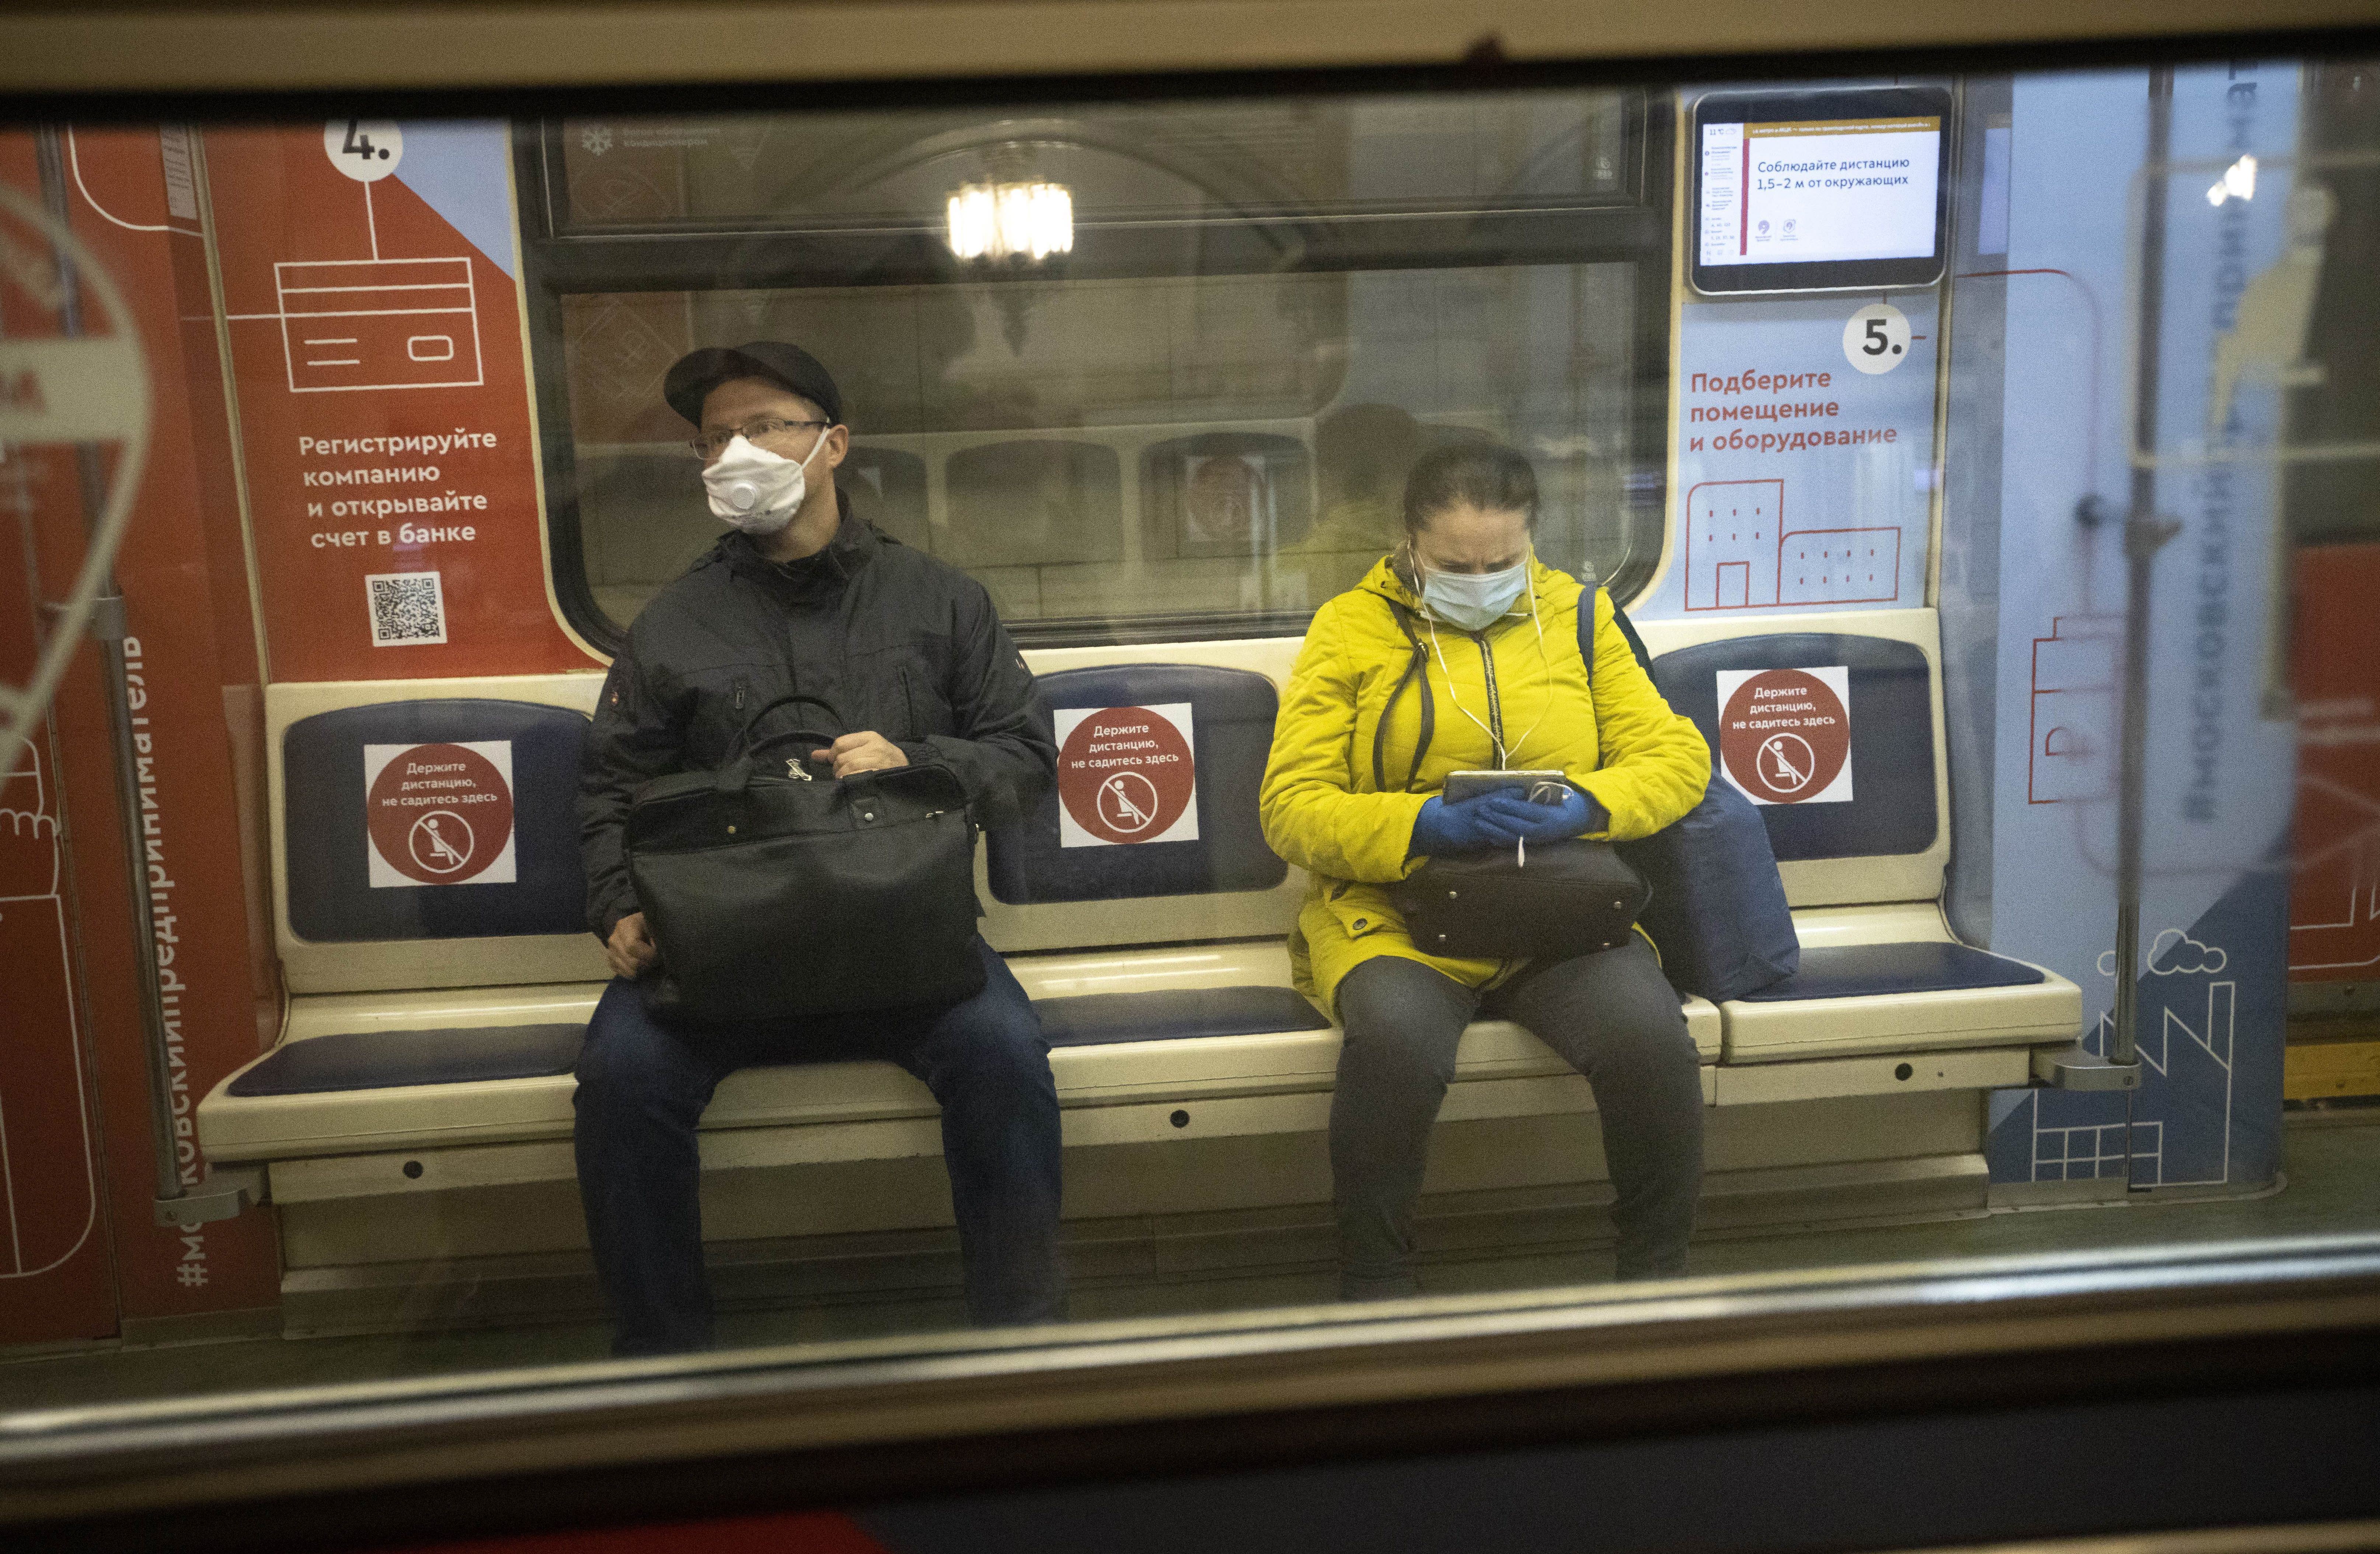 People wearing face masks and gloves to protect against coronavirus, observe social distancing guidelines as they ride a carriage in the subway on the escalator in Moscow, Russia, Wednesday, May 13, 2020. Wearing face masks and latex gloves is mandatory for people using Moscow's public transport. President Vladimir Putin declared an end to a partial economic shutdown across Russia due to the coronavirus pandemic, but he said that many restrictions will remain in place. (AP Photo/Alexander Zemlianichenko)